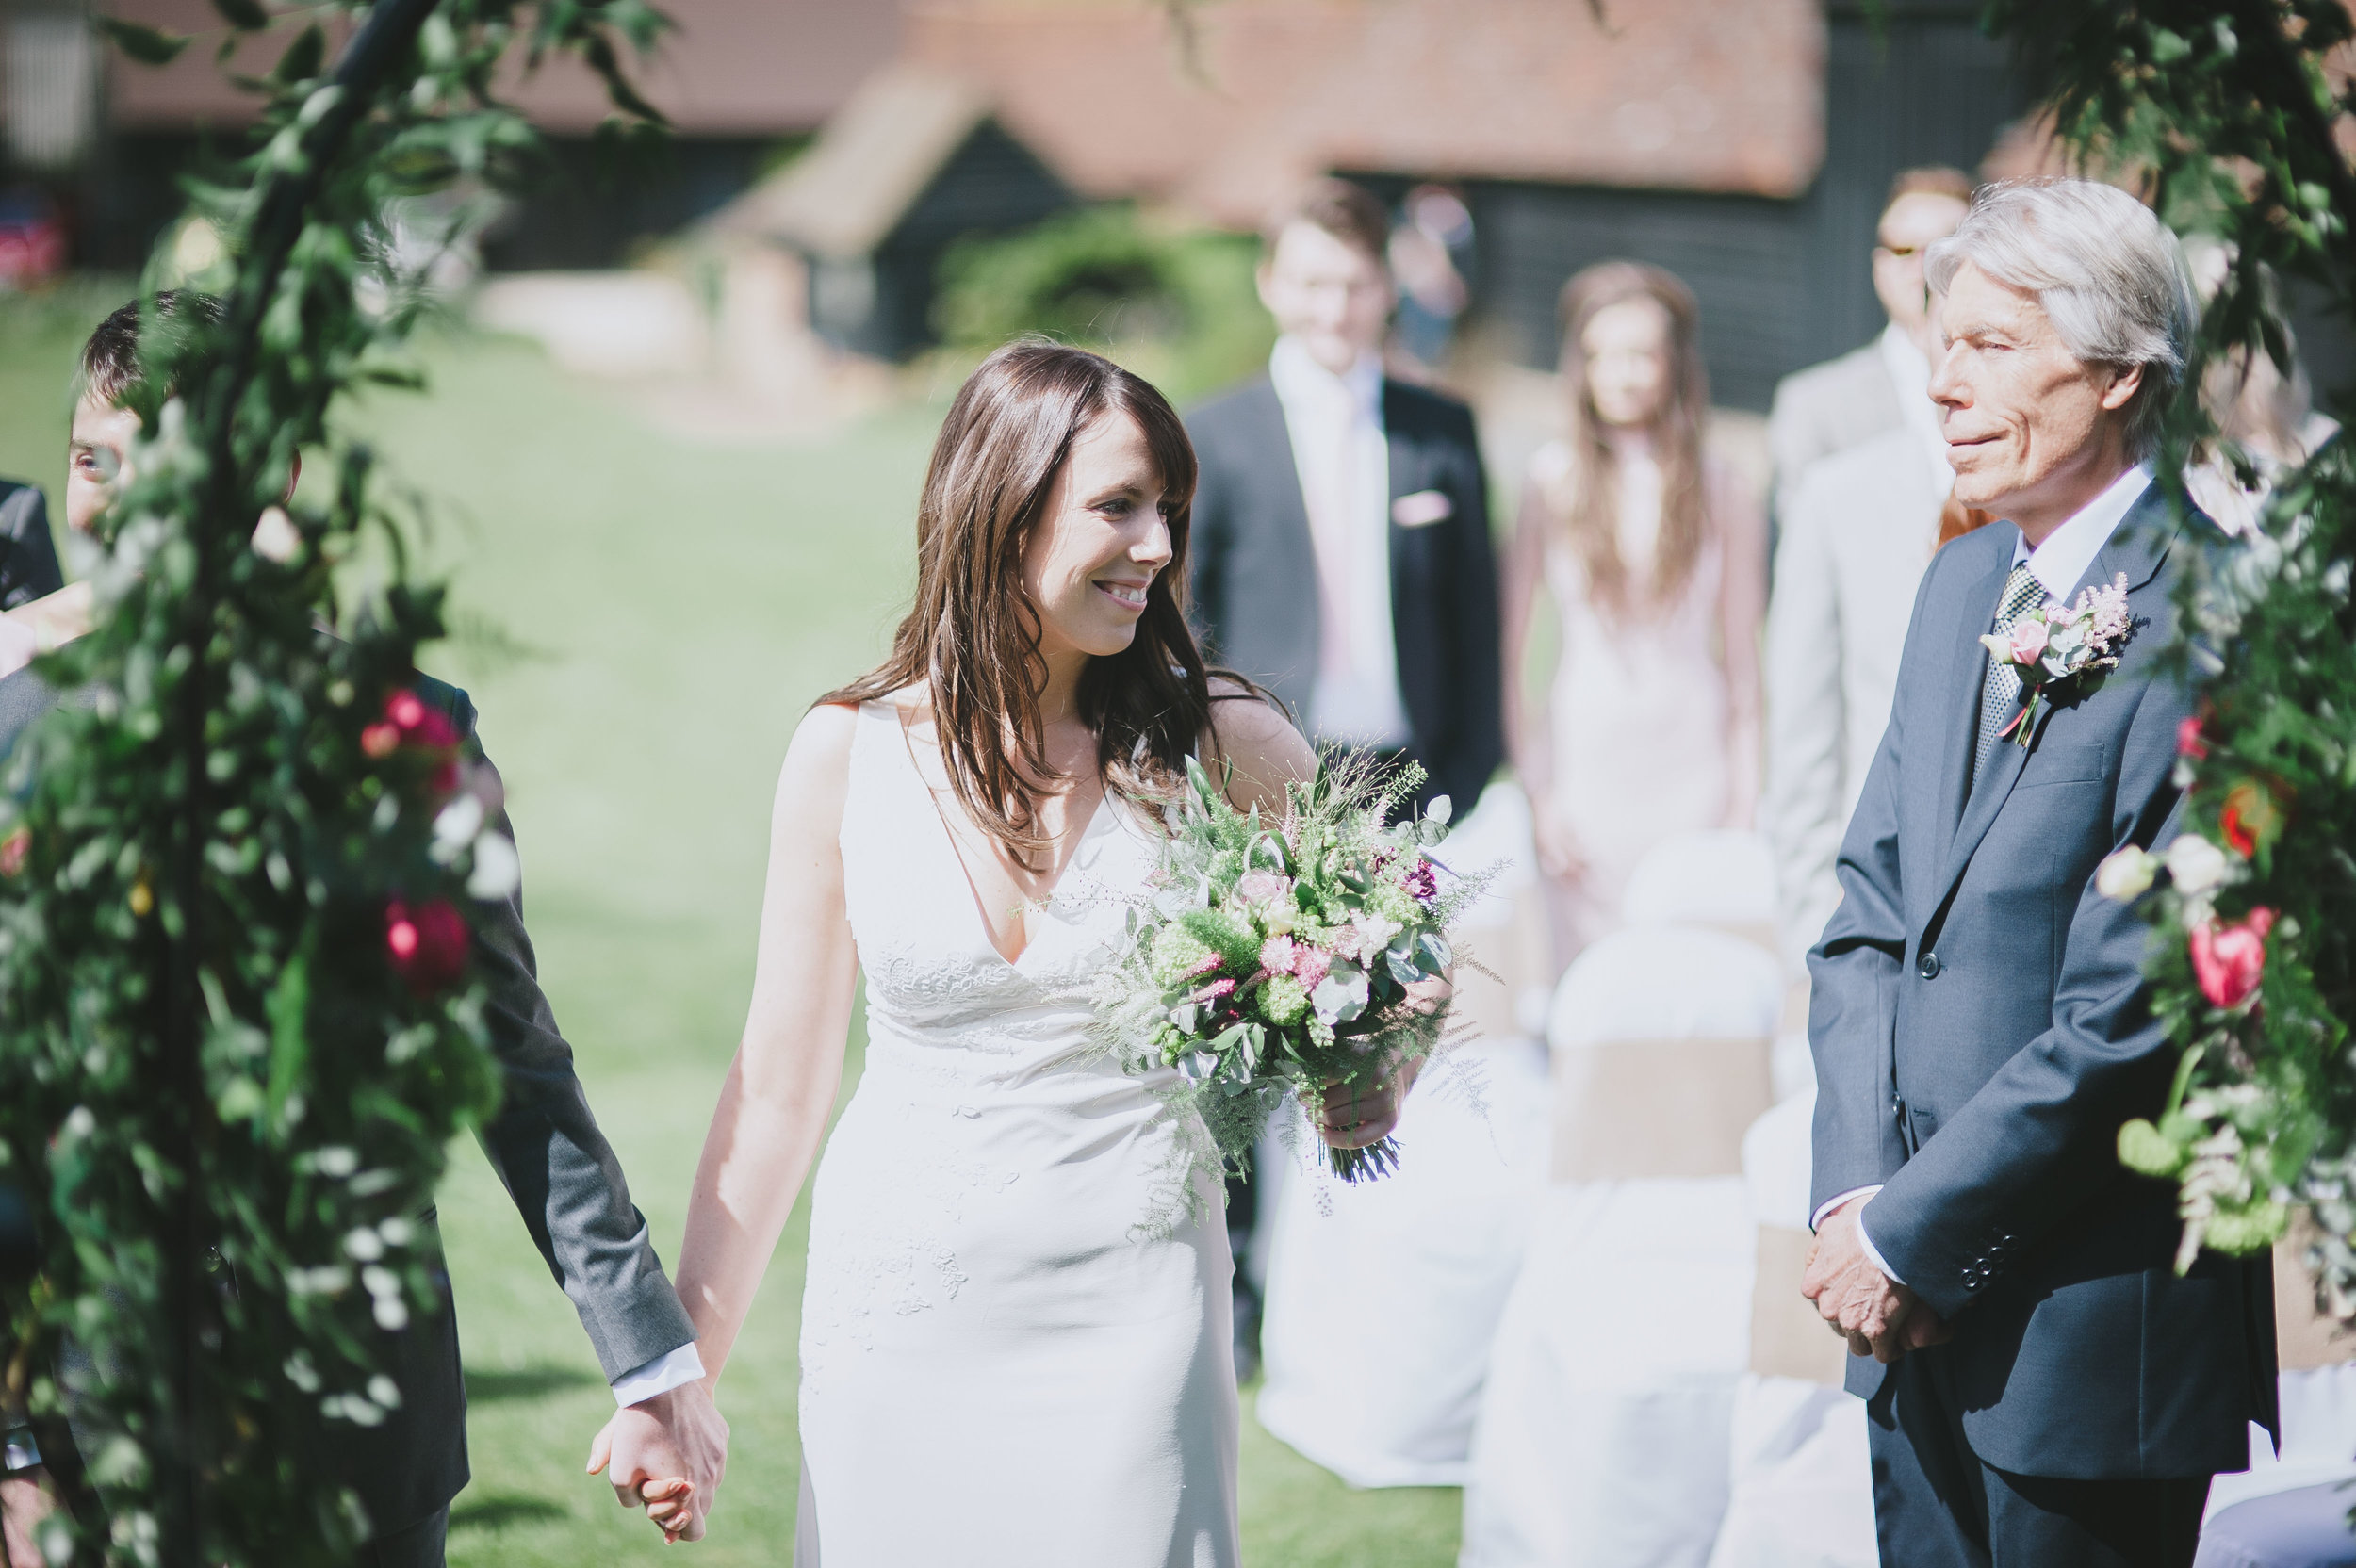 Amy+Hupe+Bridal+Bouquet+2+April+2016.jpg